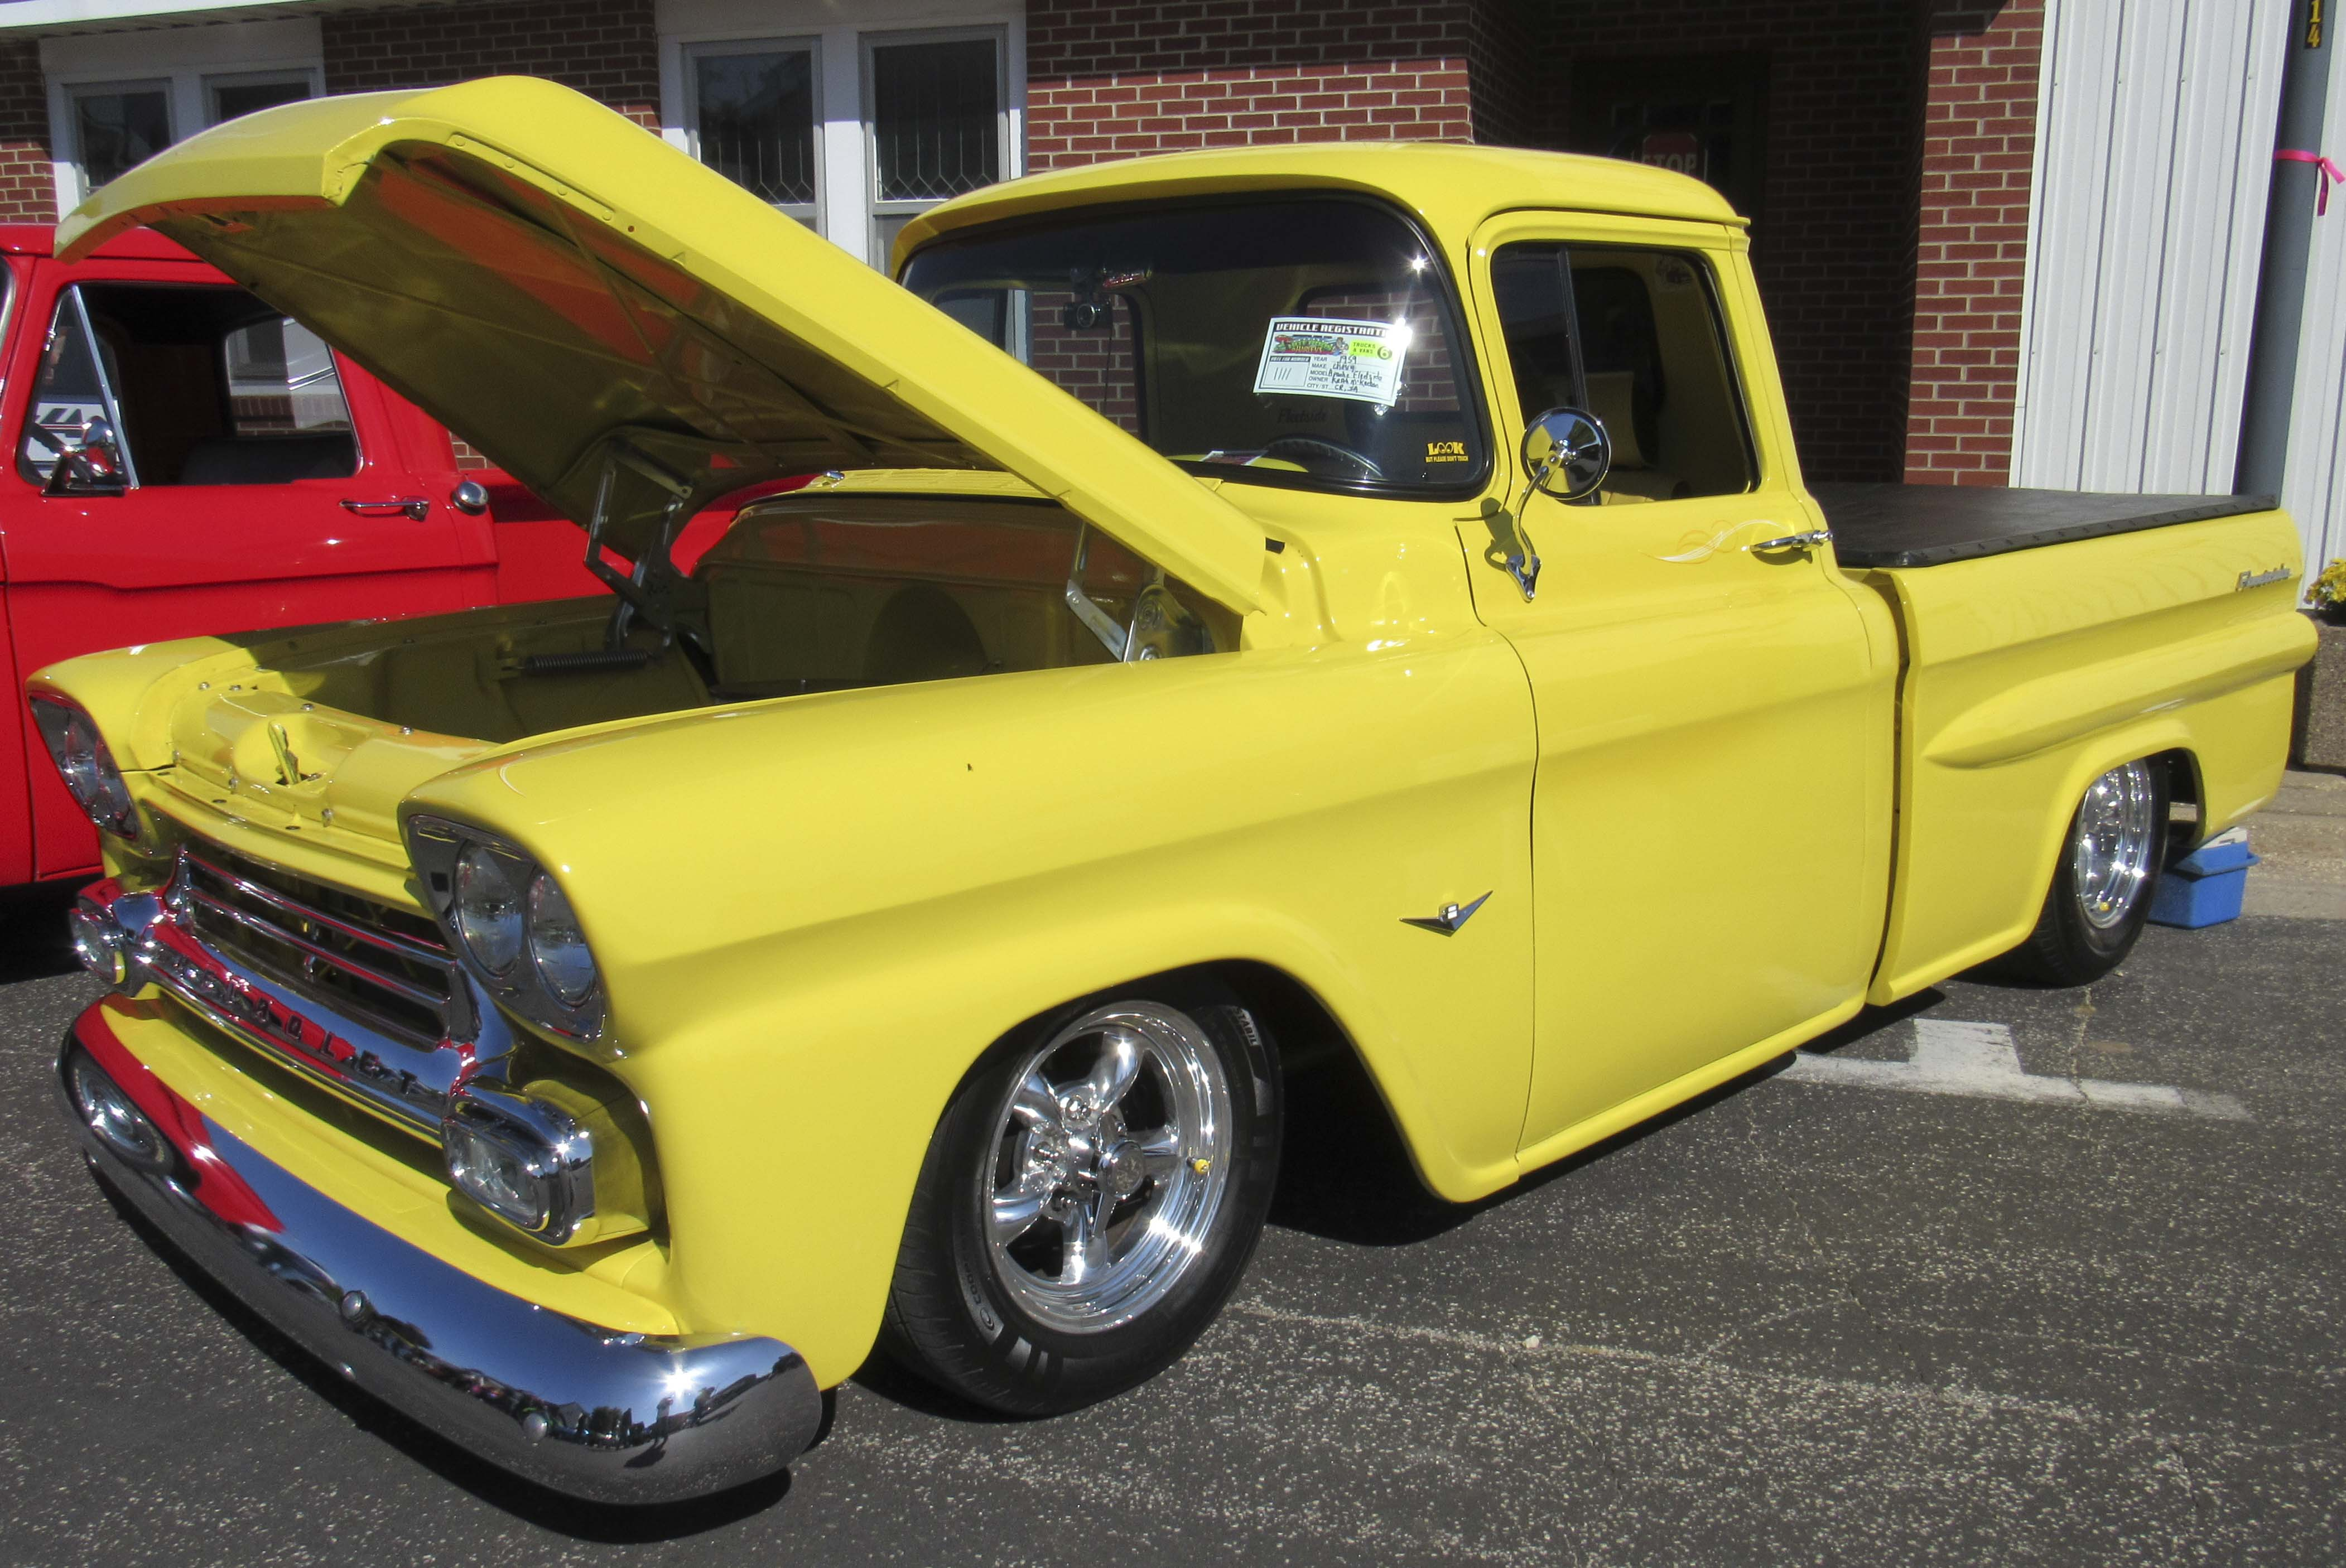 There were lots of classic trucks to see at the Hopkinton car show on Oct. 4, including this 1959 Chevy Apache Fleetside owned by Keith McKeeban of Cedar Rapids. (Photos by Kim Brooks)